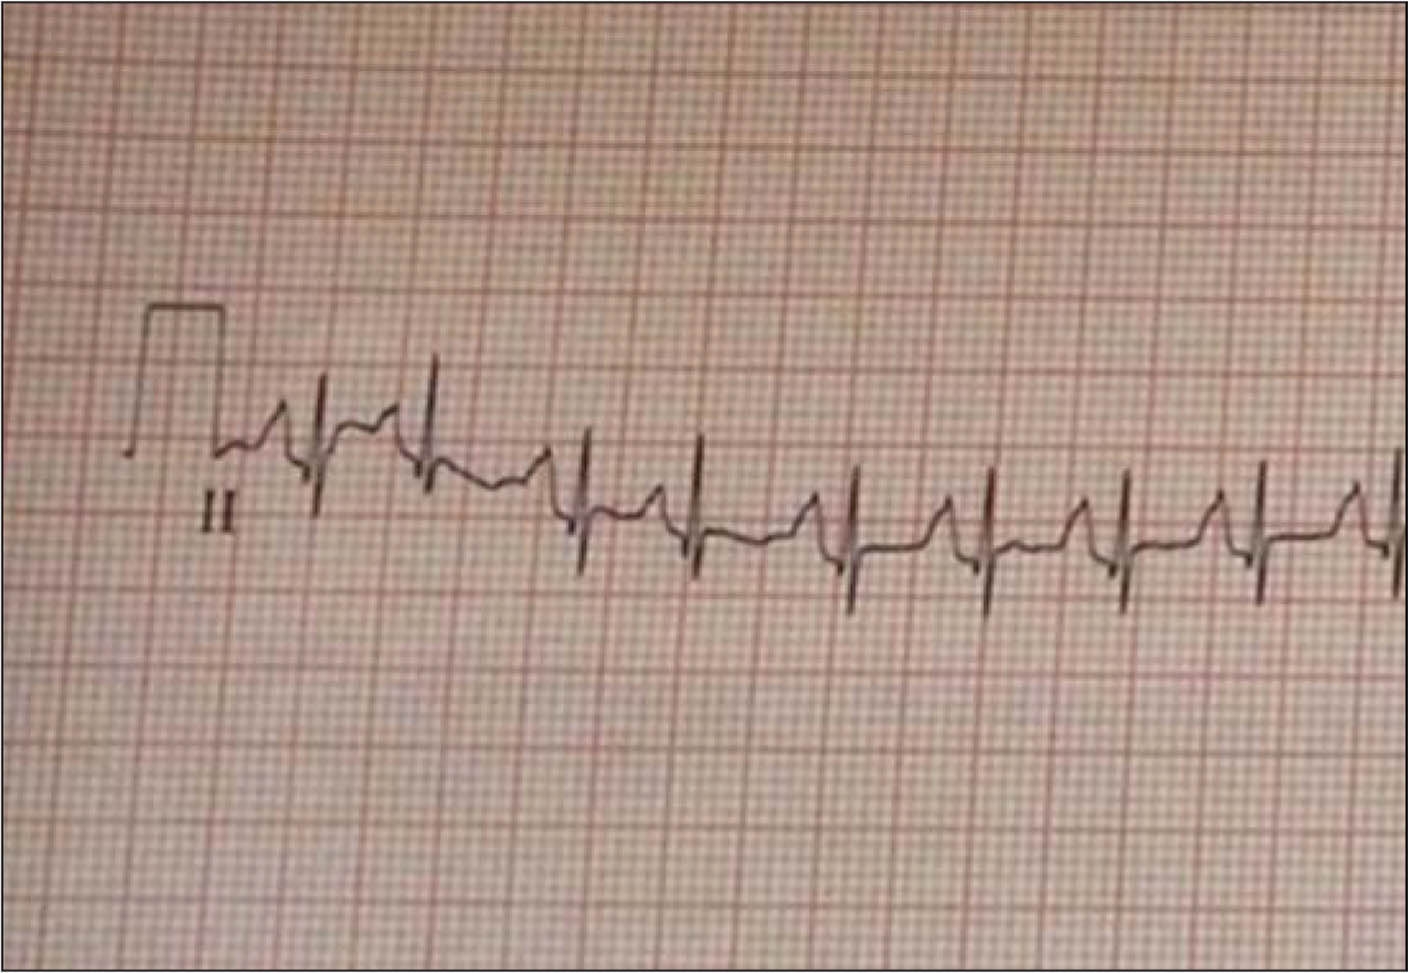 An electrocardiogram status-post direct current cardioversion (normal sinus rhythm). Ventricular rate is approximately 165 beats per minute.